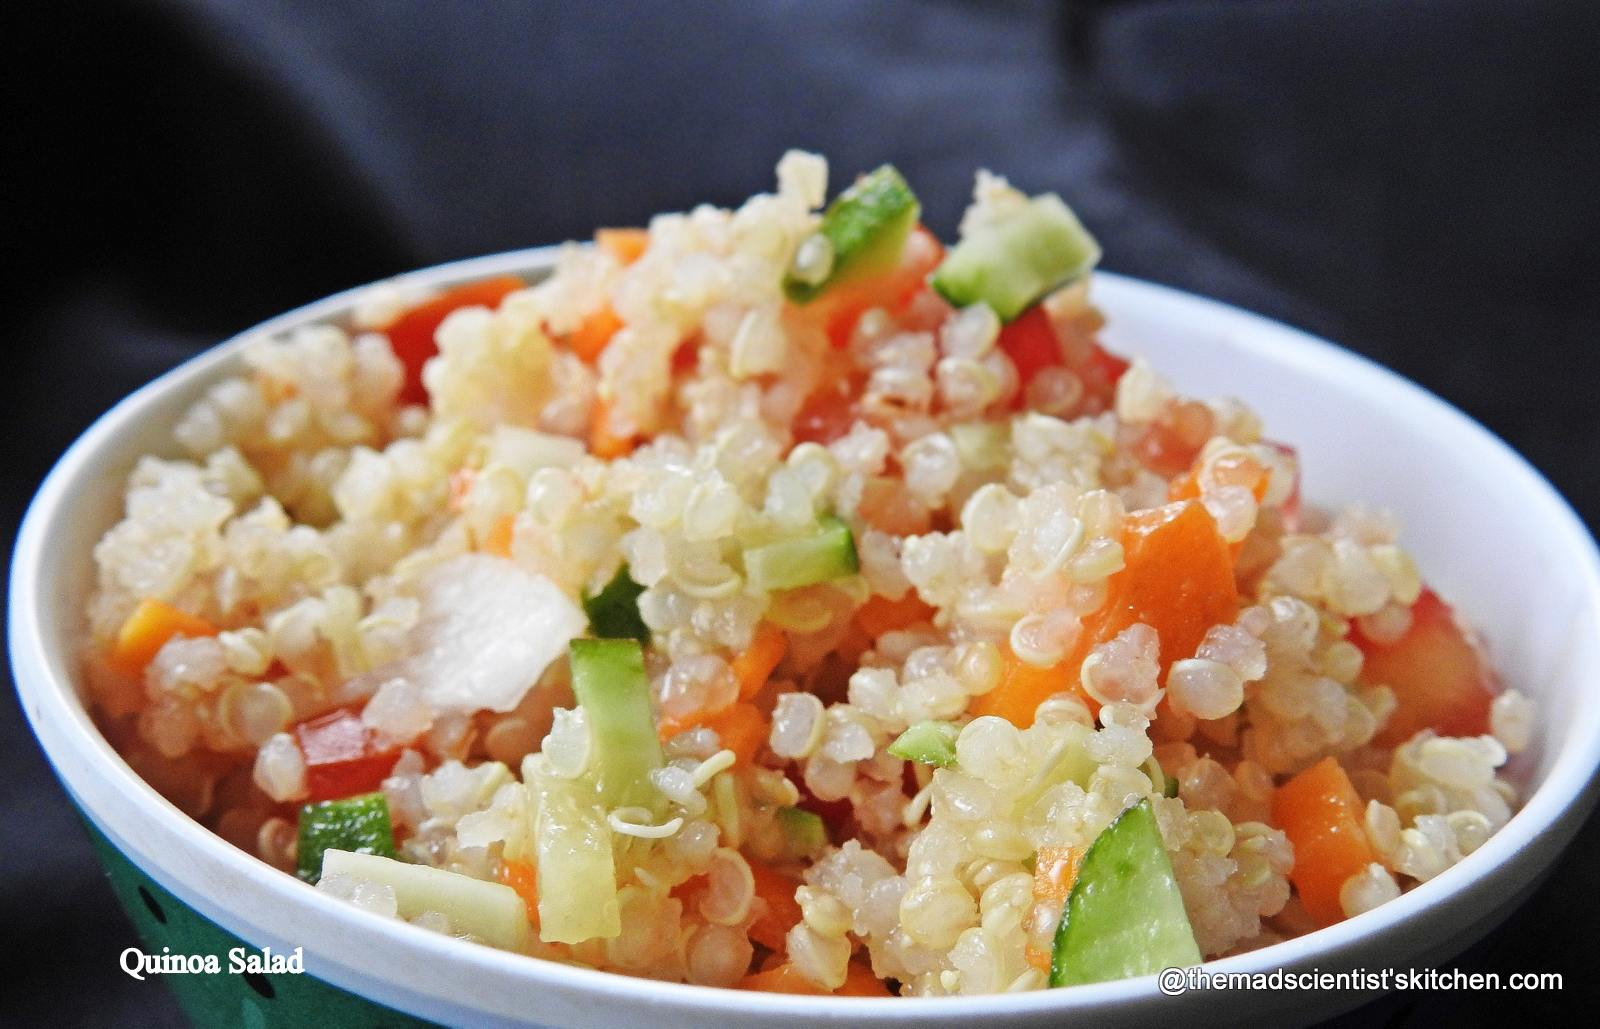 Simple but Yummy Quinoa Salad